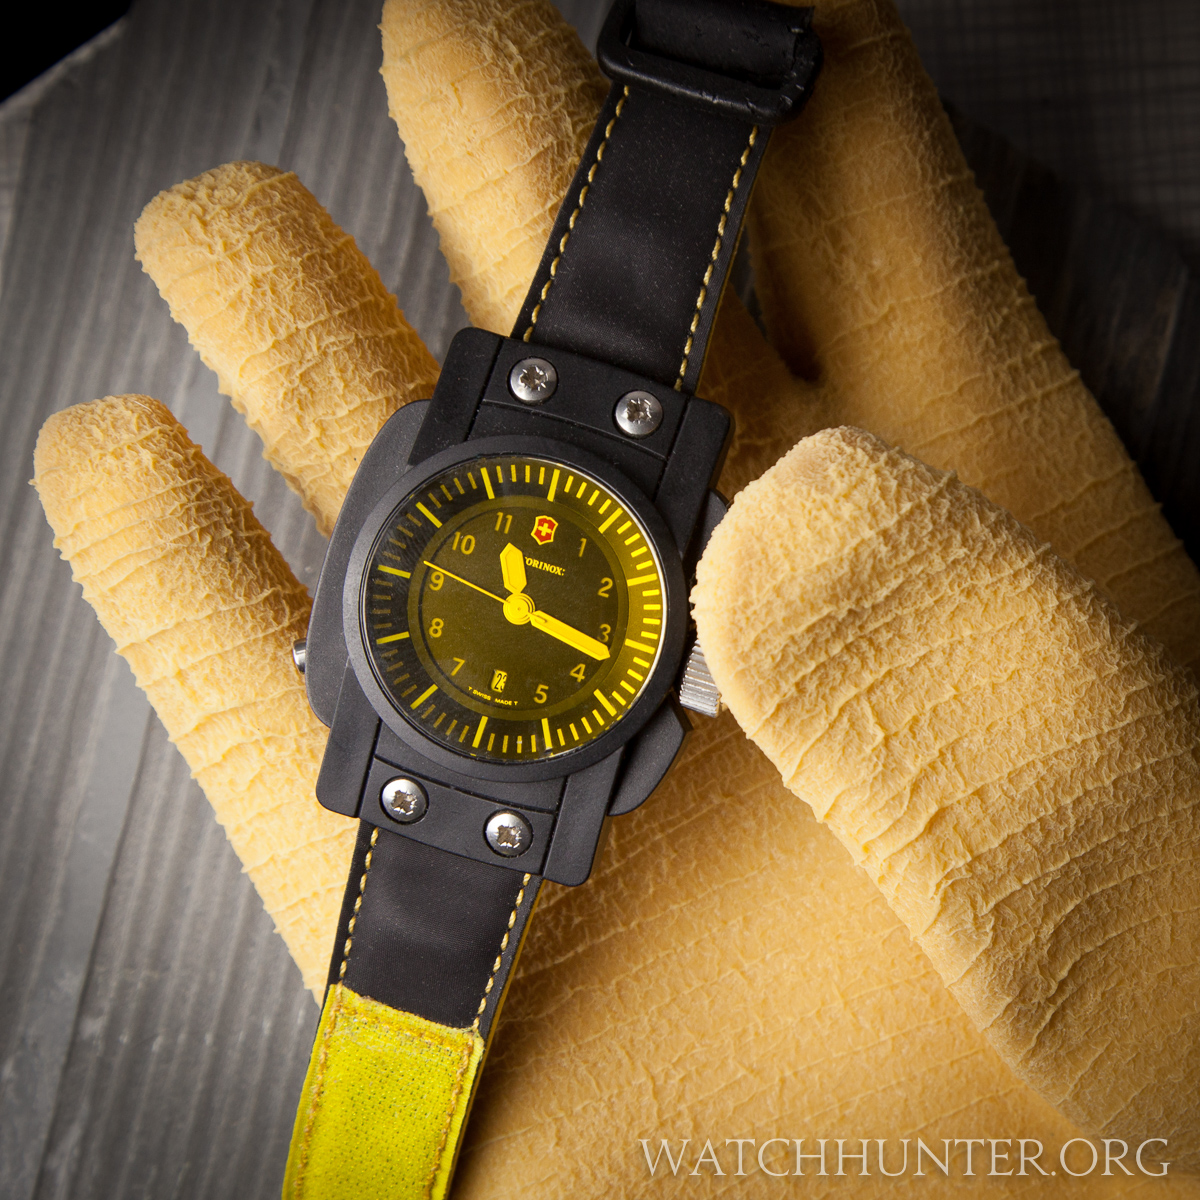 This glove seemed fitting to handle this bright yellow watch!